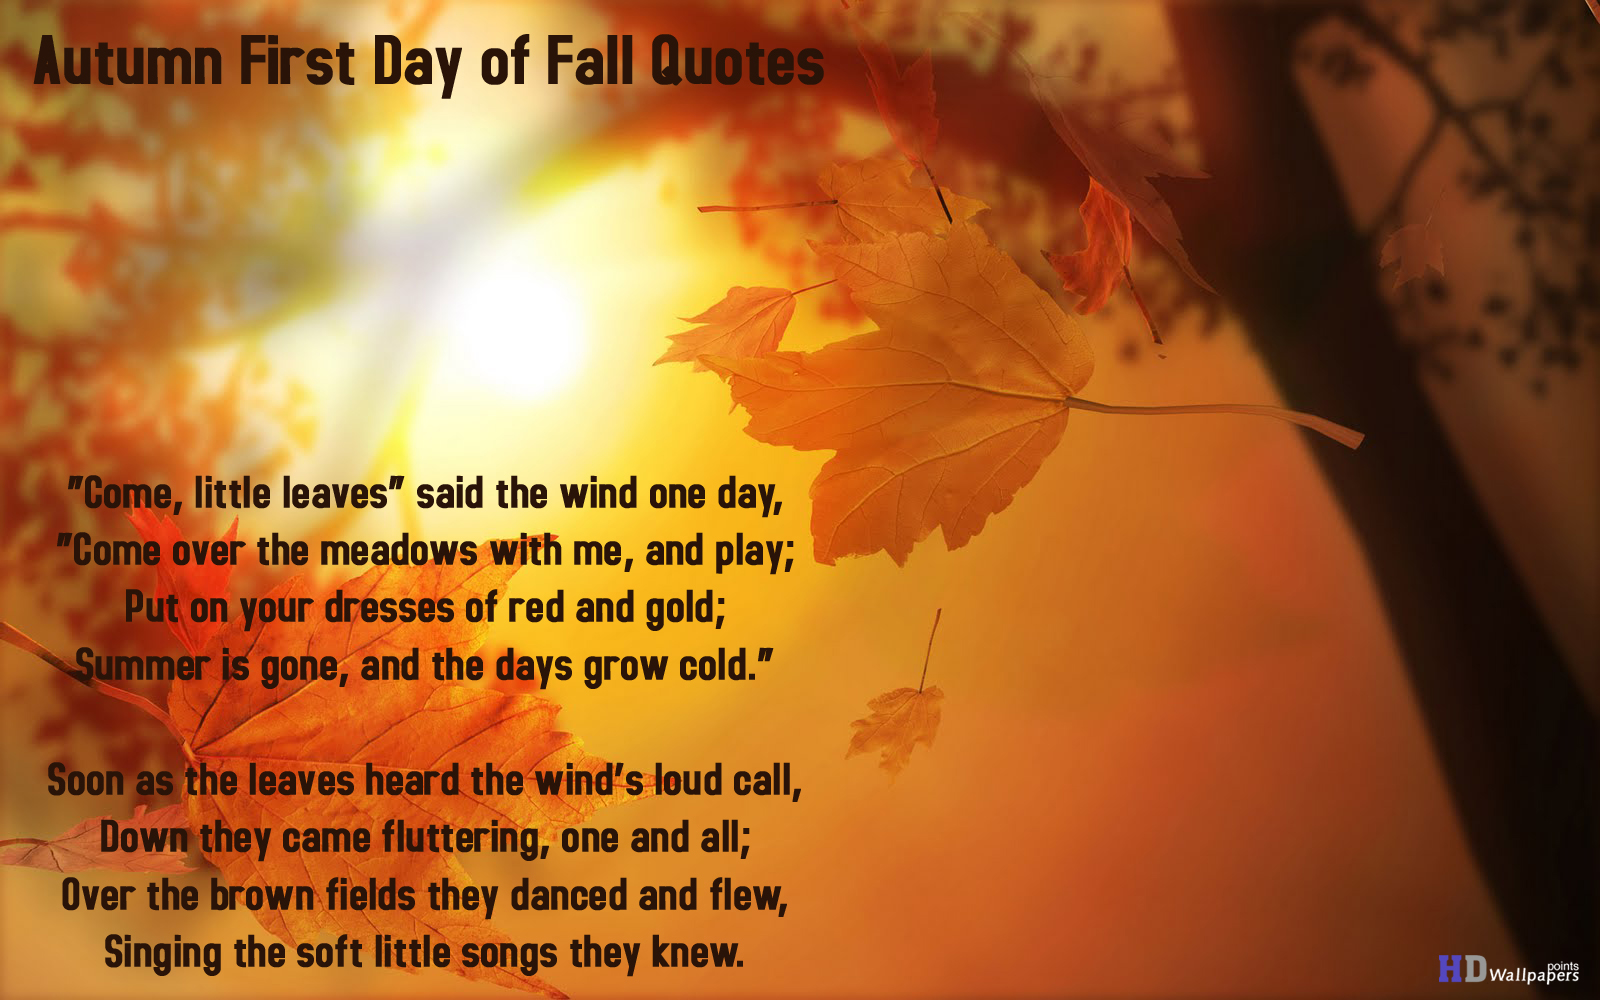 Autumn First Day of Fall Quotes Wallpapers 1600x1000